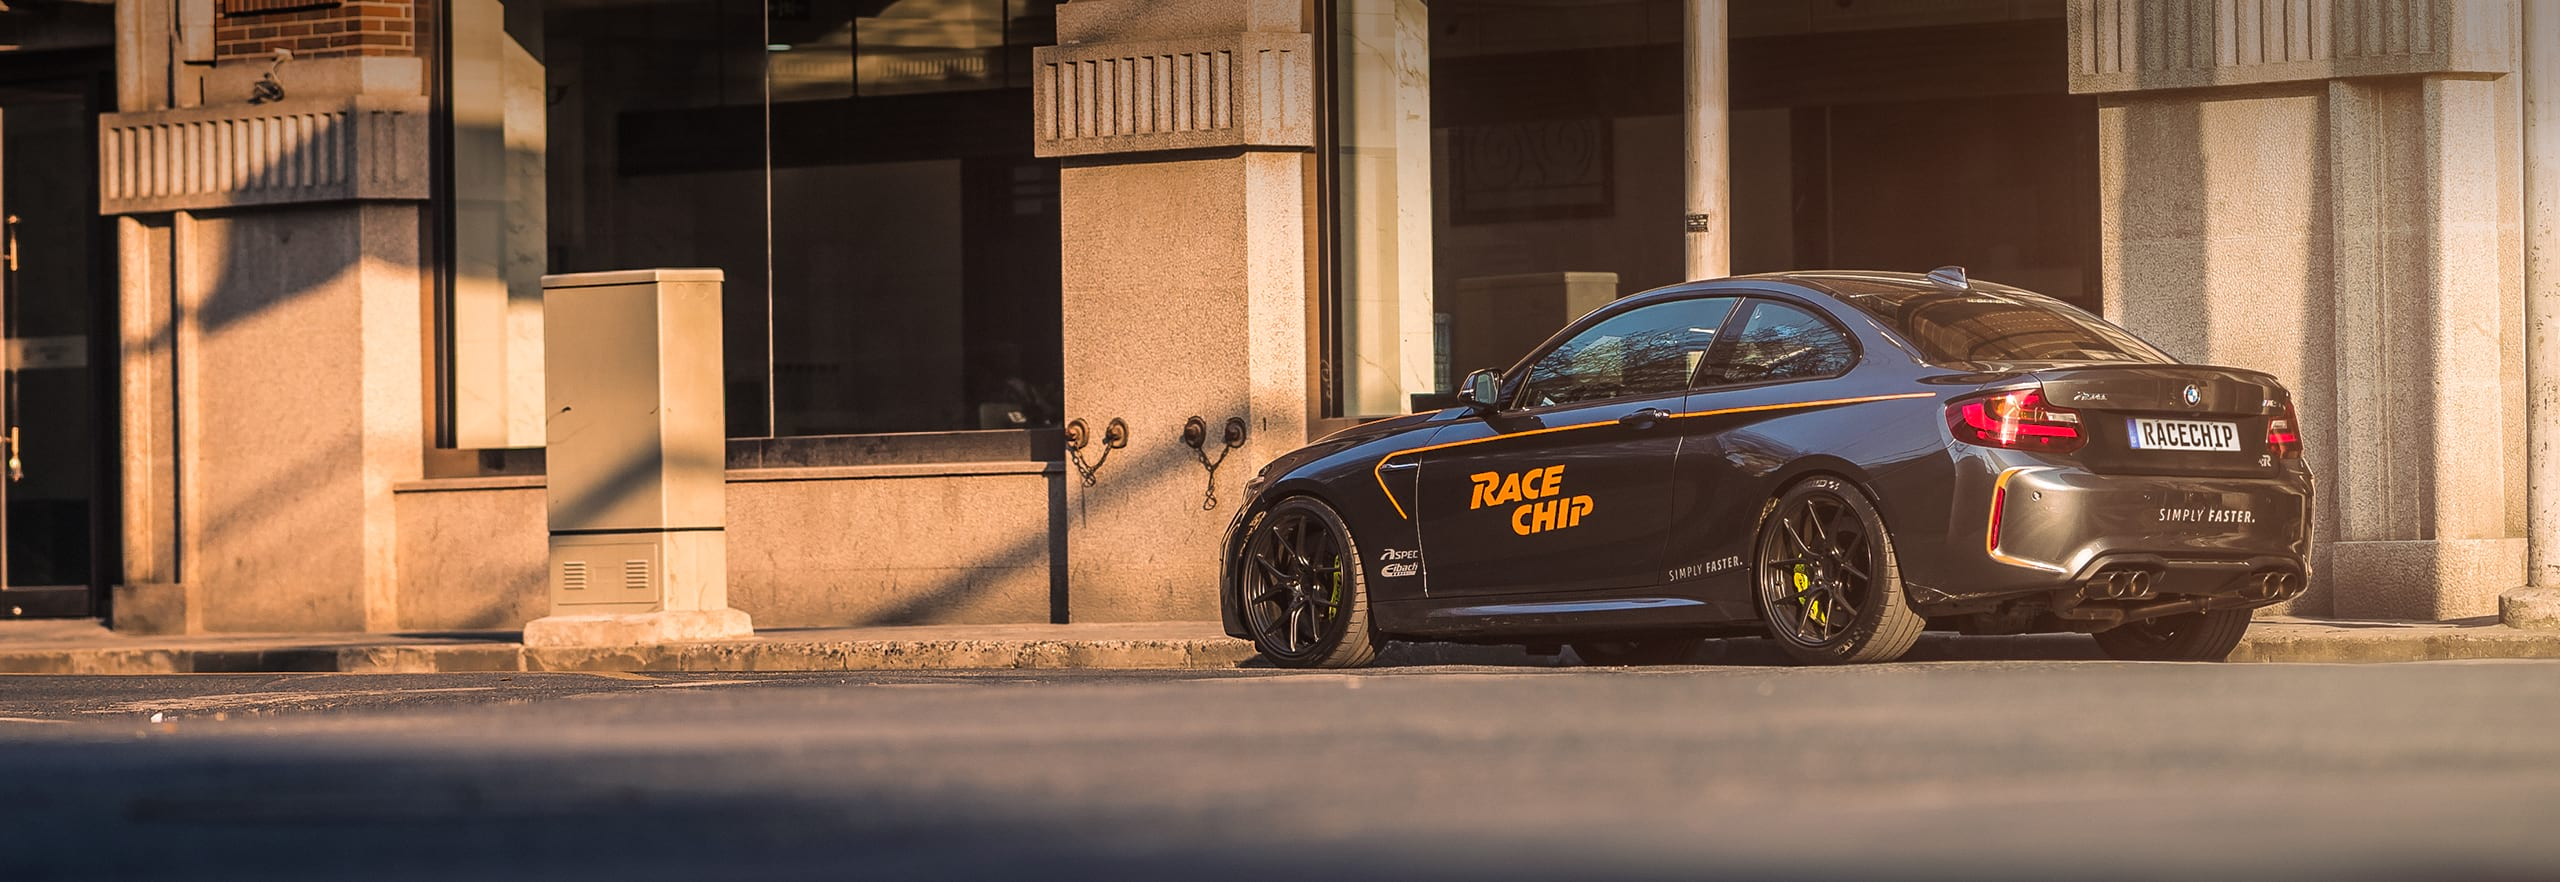 BMW Chip Tuning - Performance Chip by RaceChip